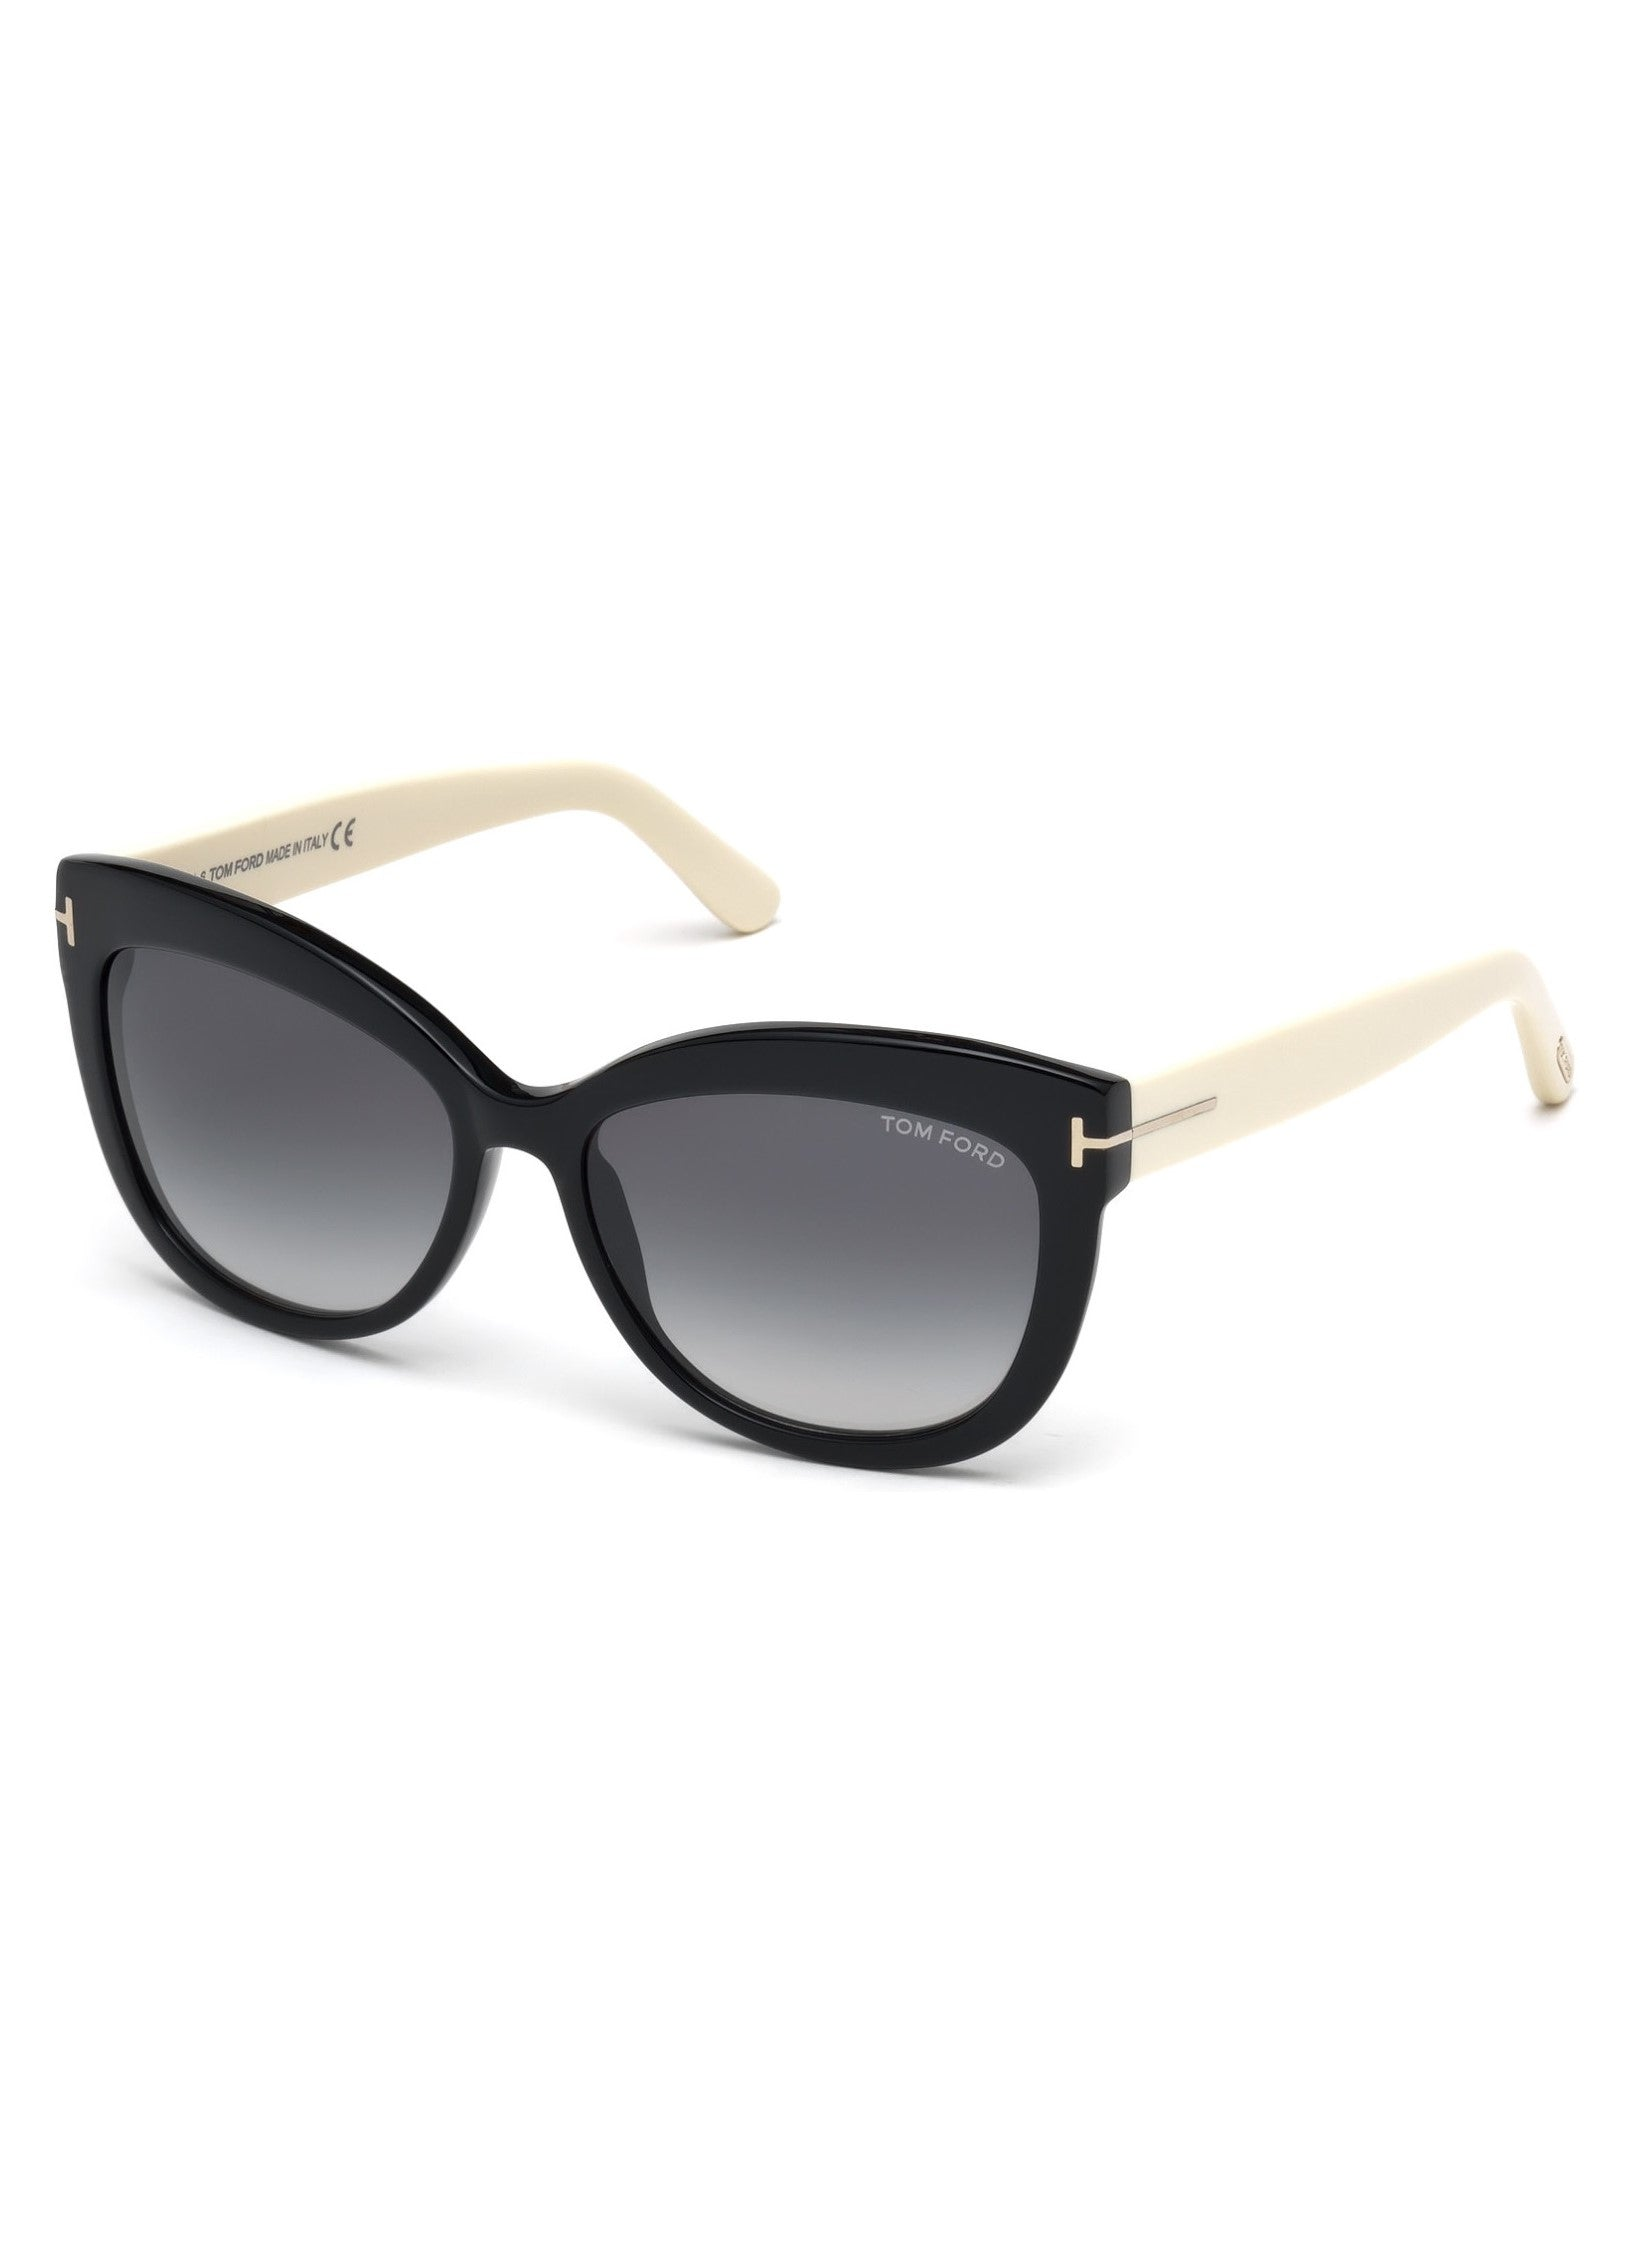 Tom Ford Alistair sunglasses in black/cream with gradient smoke lenses